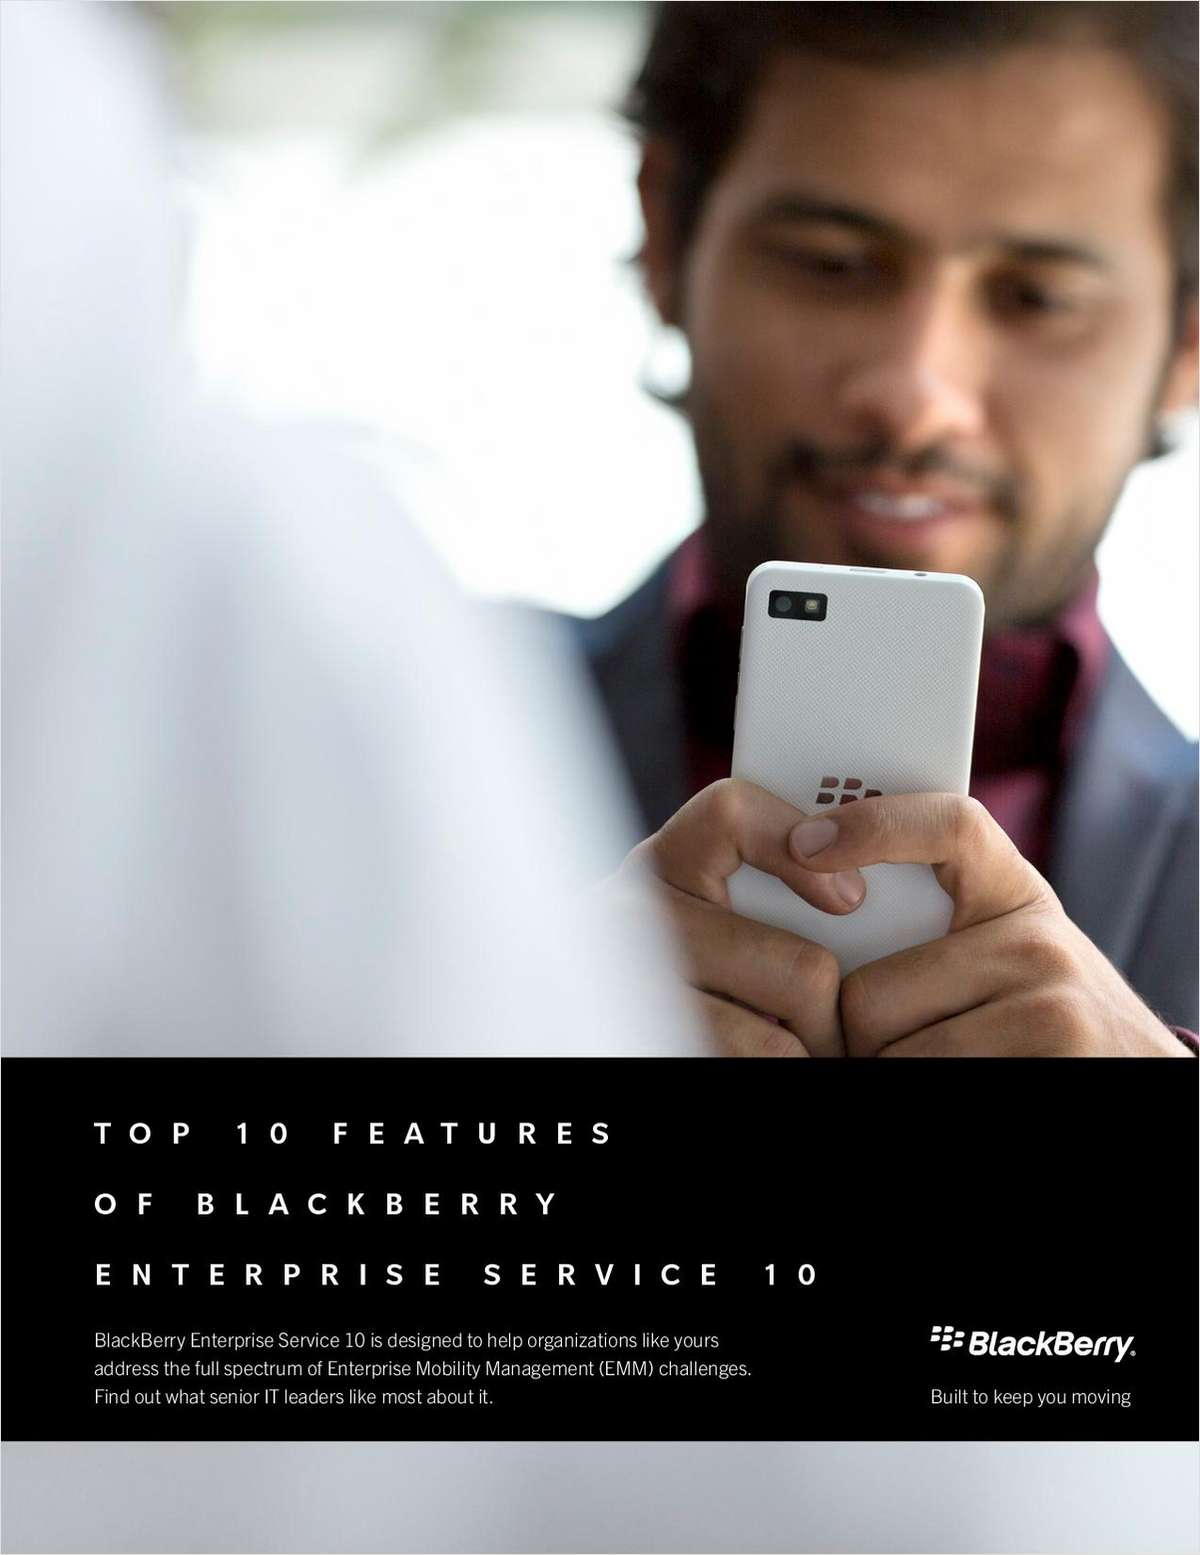 Top 10 Features of BlackBerry Enterprise Service 10